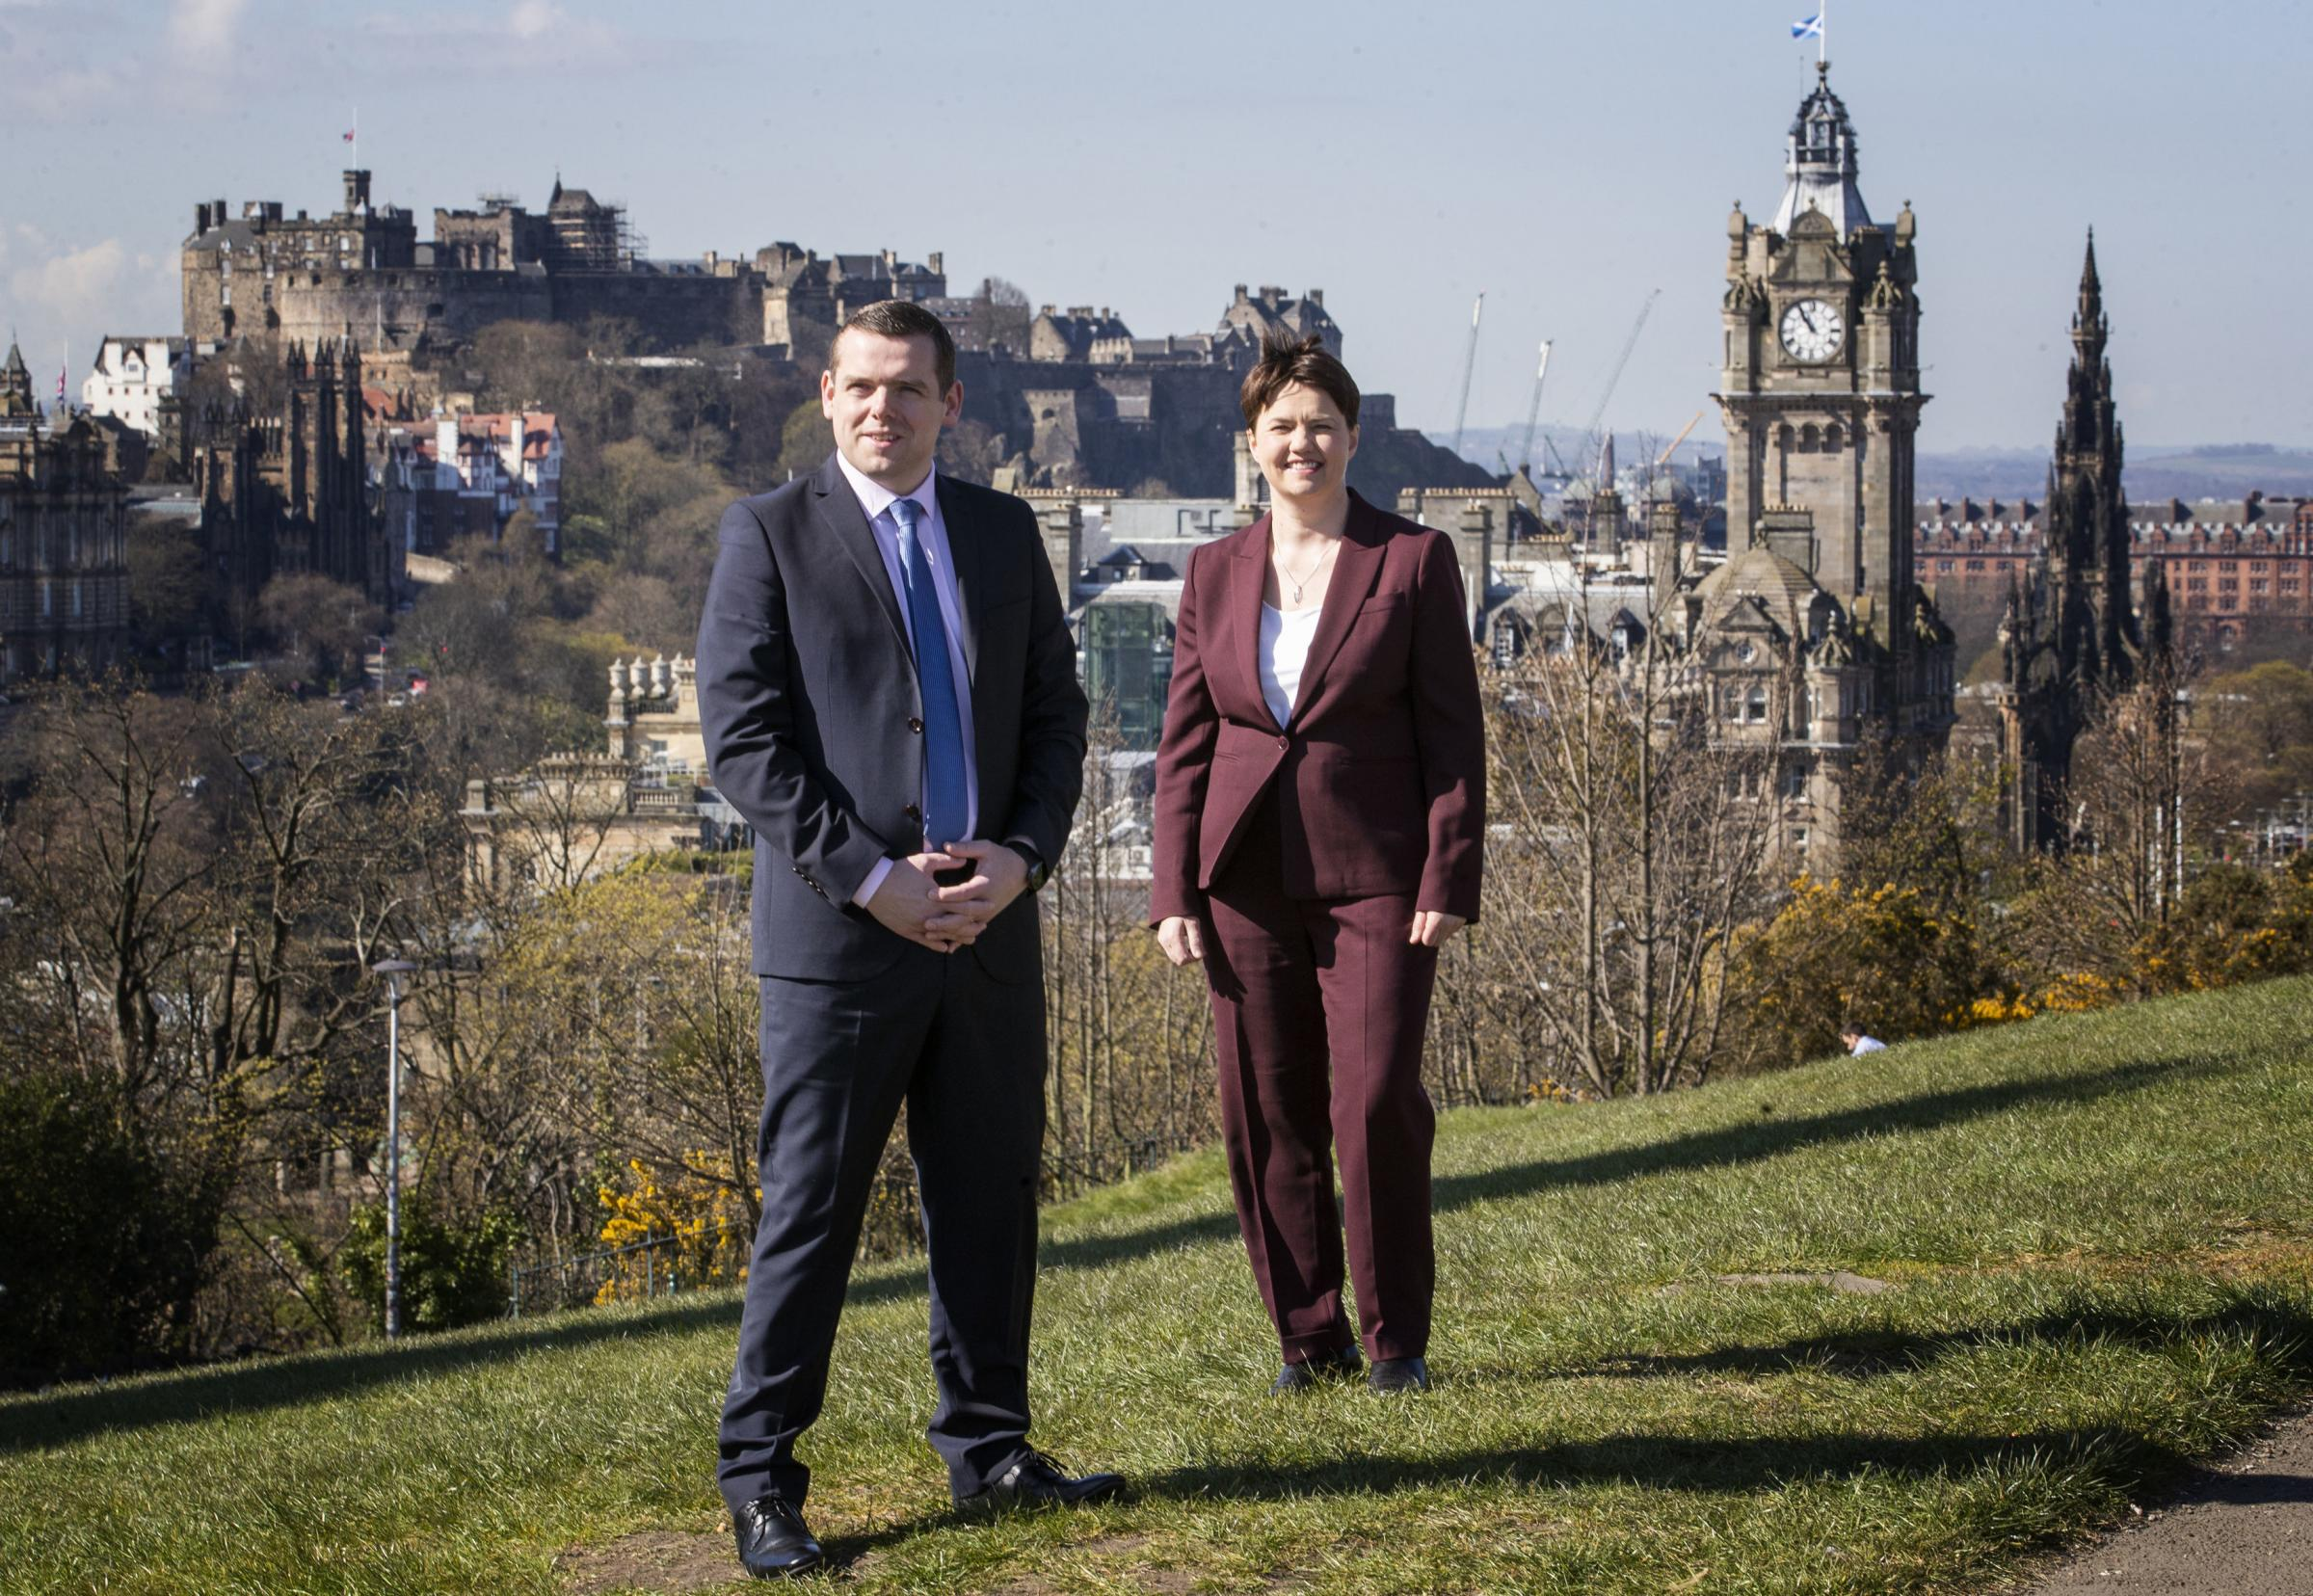 From Brexit U-turns to the 'power grab', this is how the Tories sold out Scotland